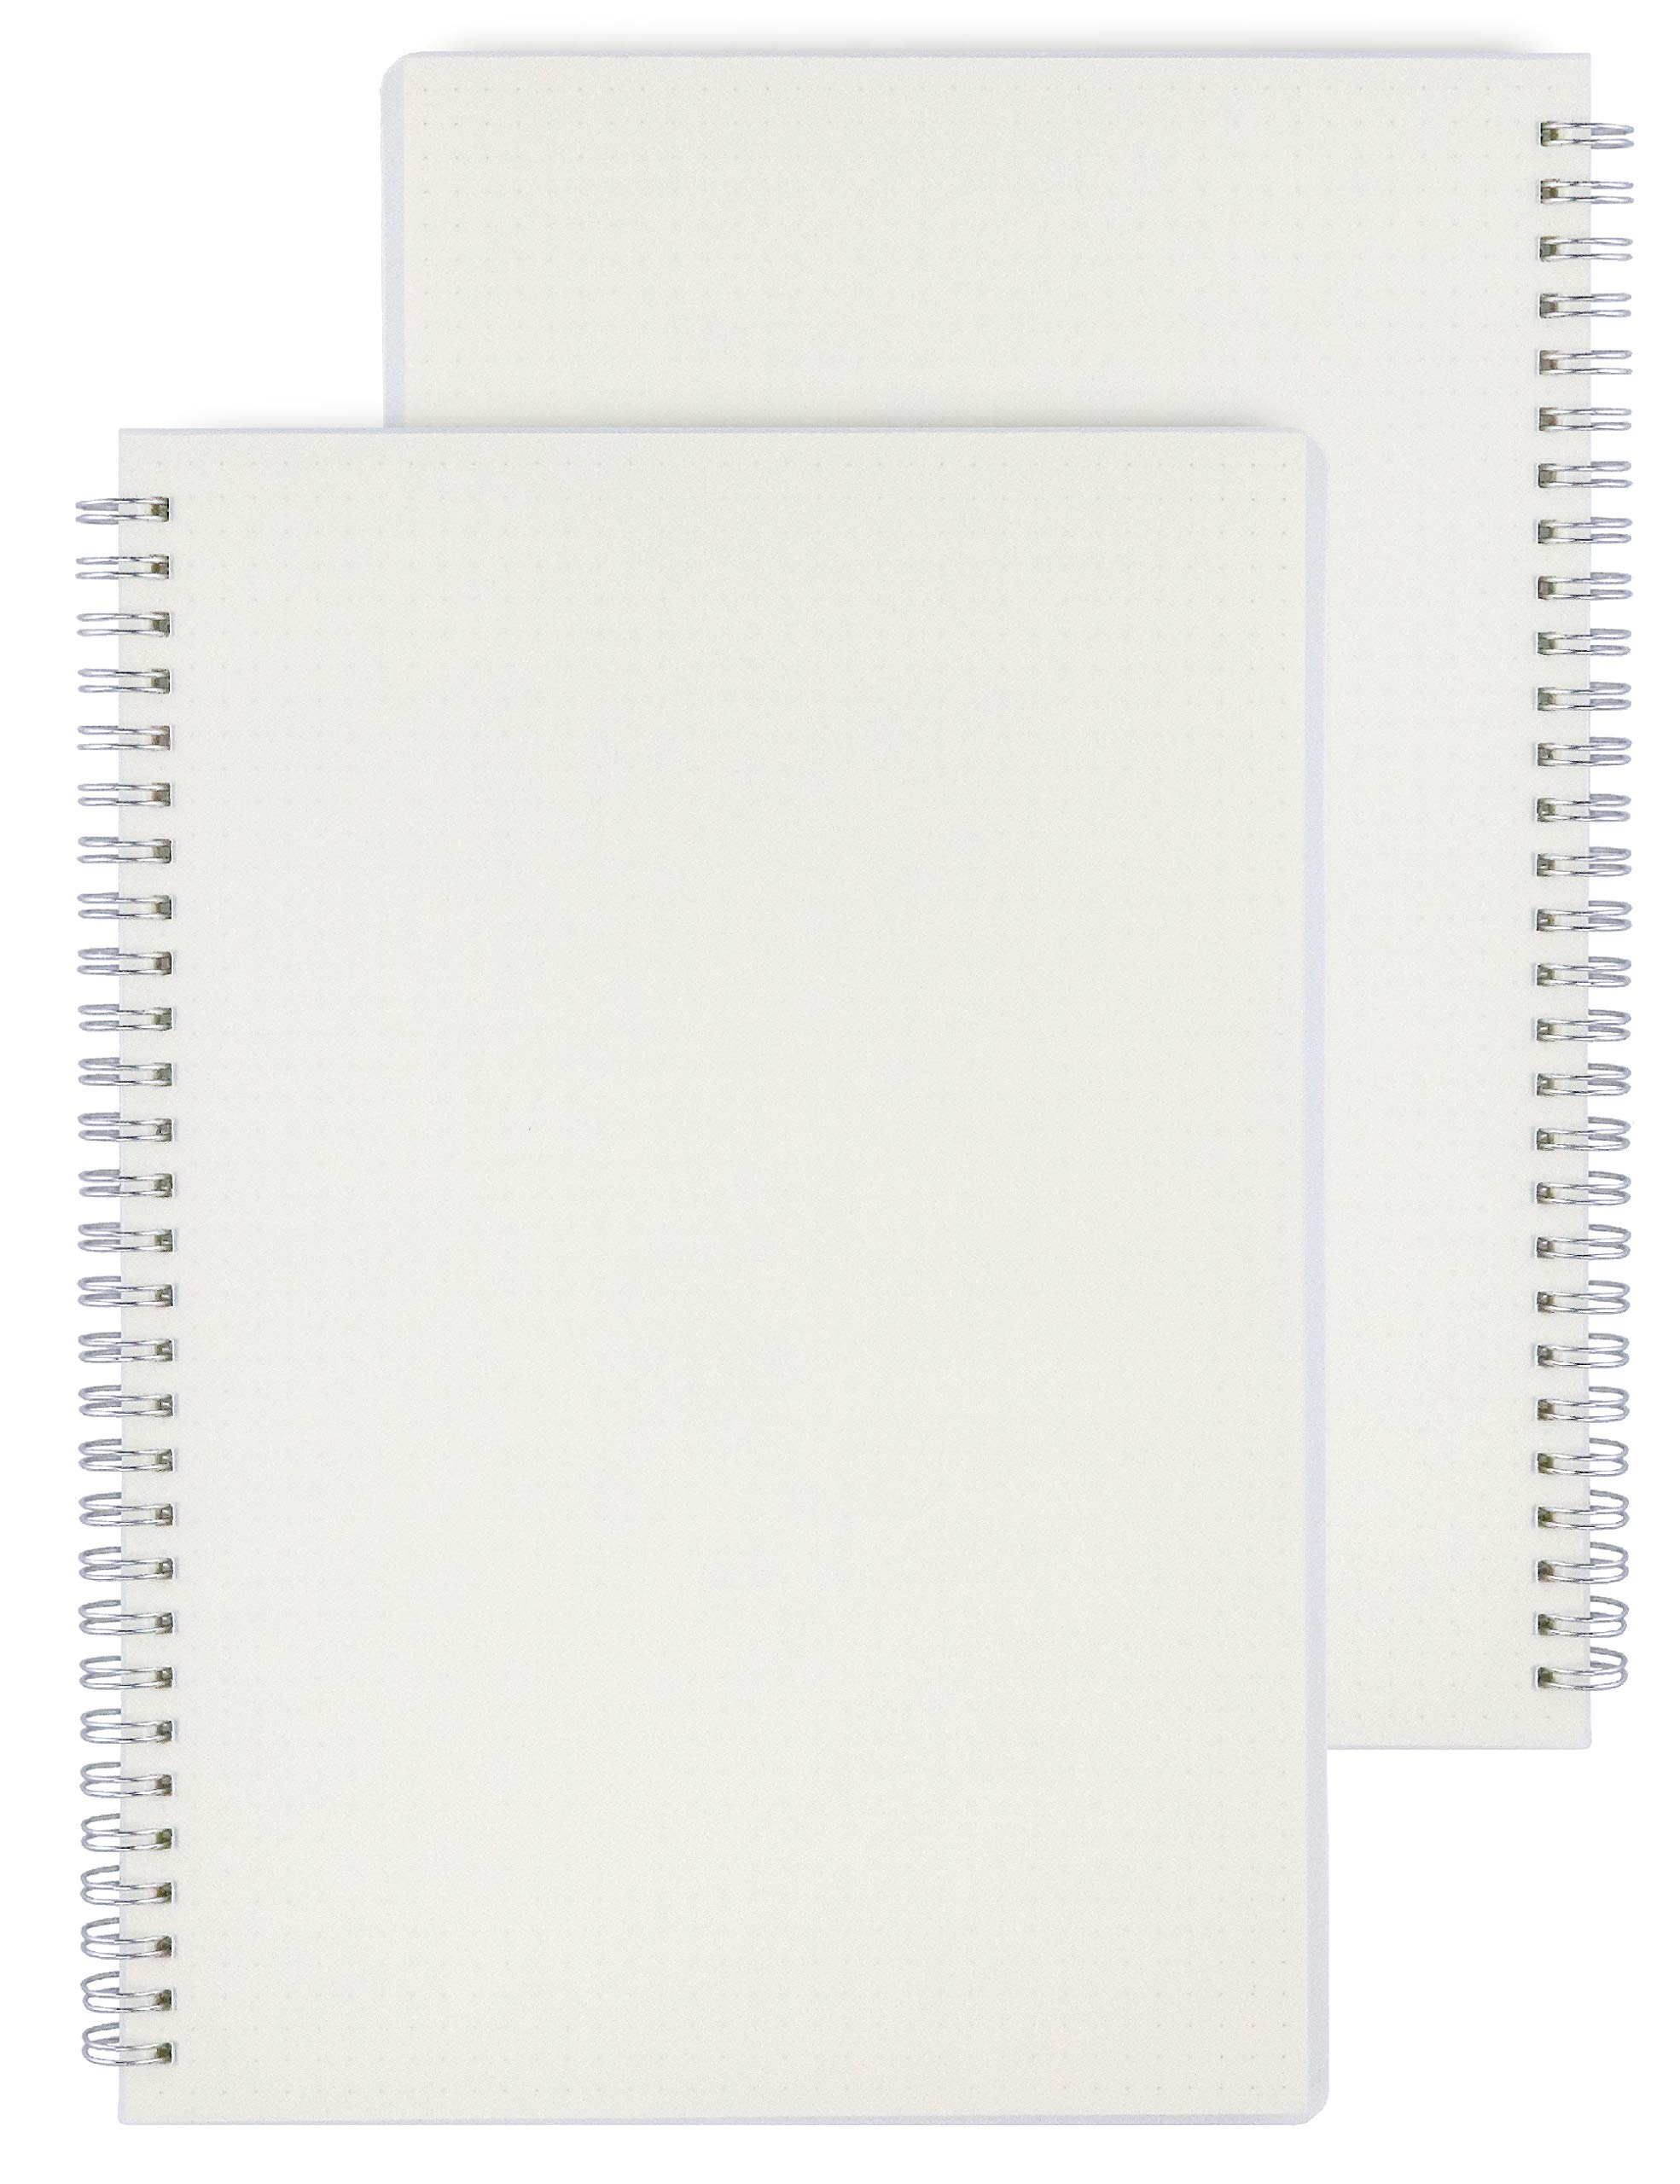 Miliko Transparent Hardcover A5 Size Dot Grid Wirebound/Spiral Notebook-2 Per Pack (Dot Grid), A5 8.27inX5.67in by MILIKO